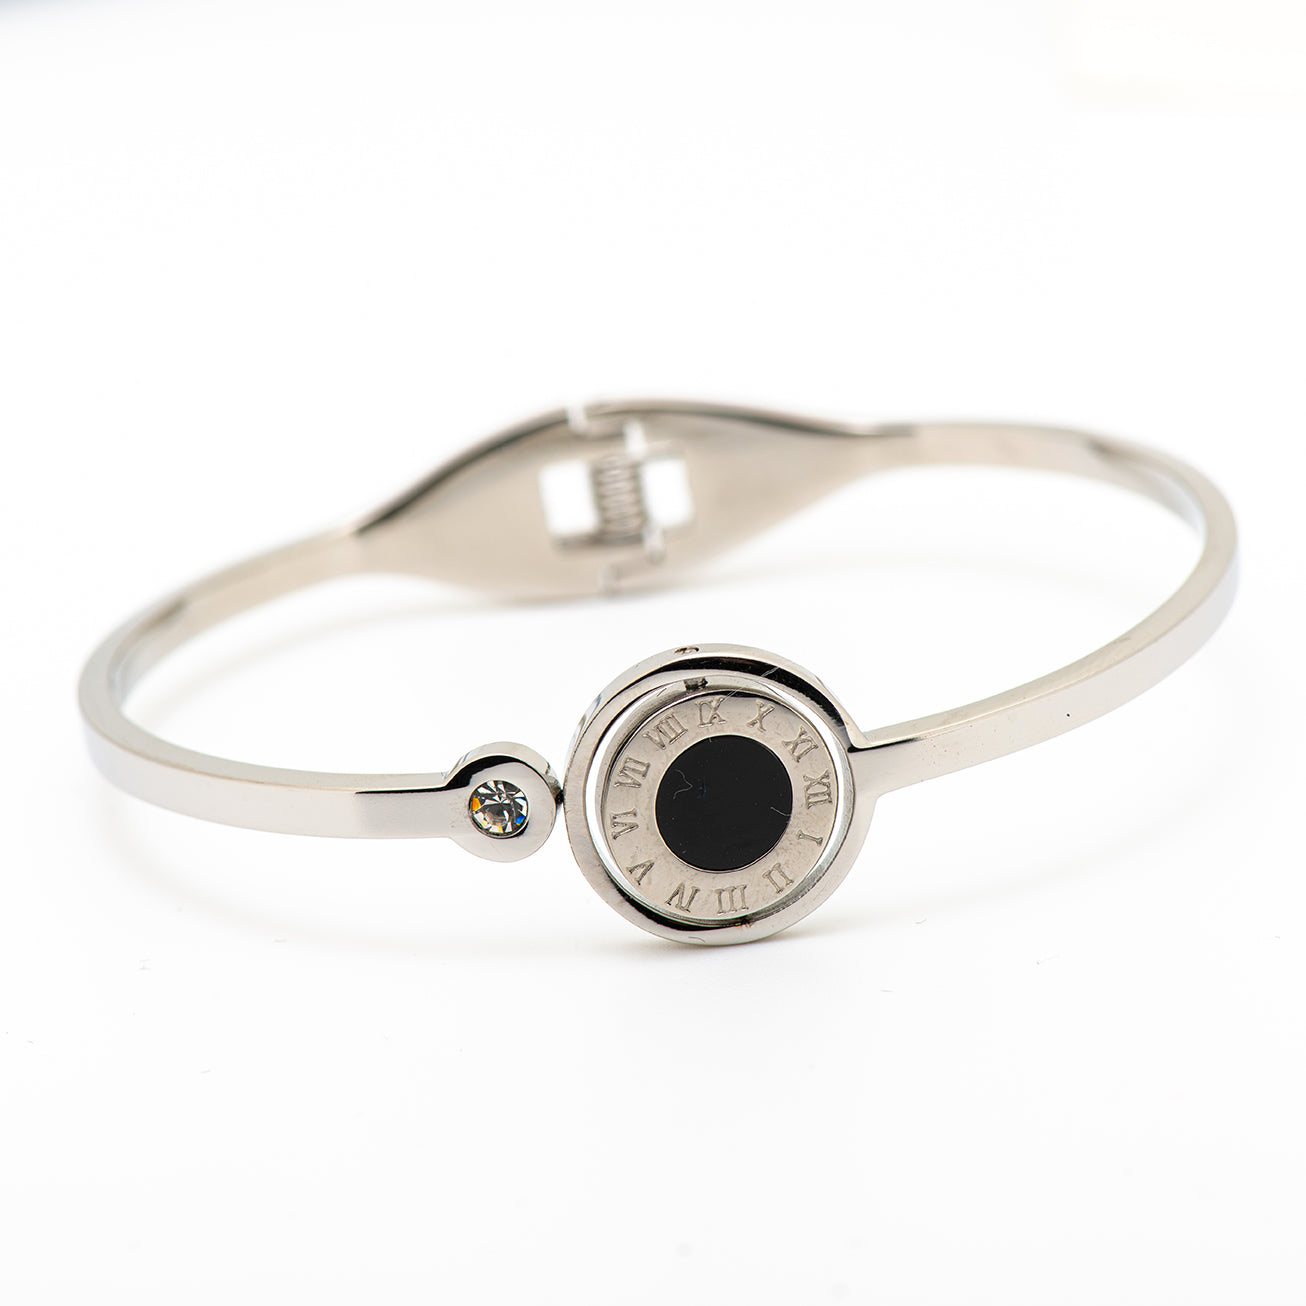 stainless steel bangle with double side, black and white mother of pearl